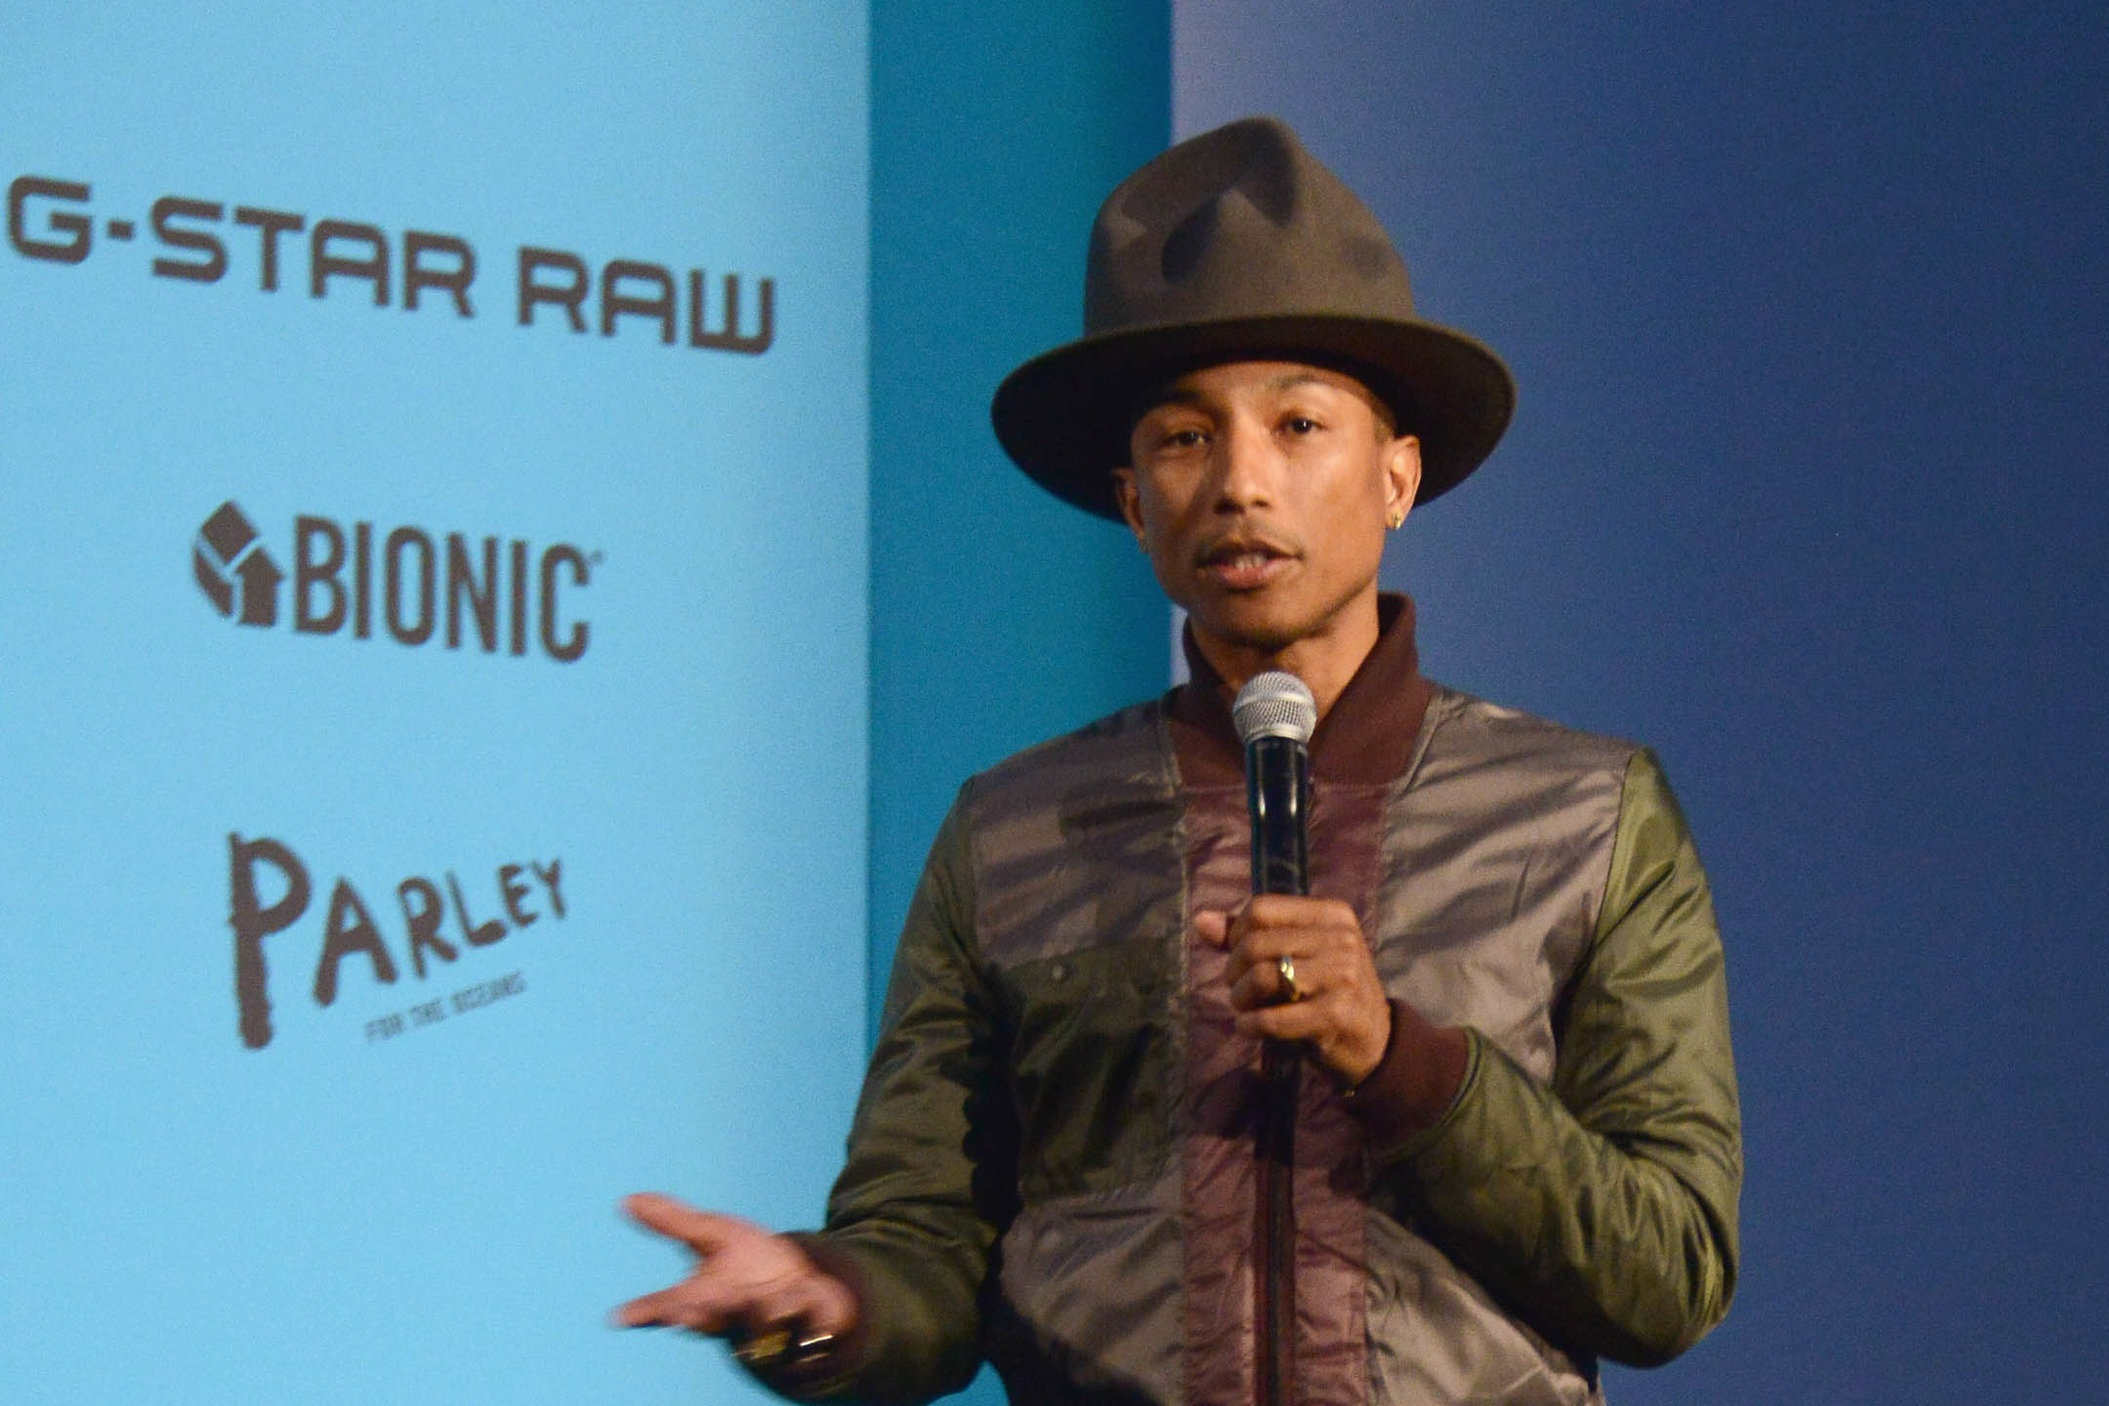 """BIONIC YARN - https://www.bionicyarn.com/Tyson Toussant – the co-founder of BIONIC, making fashion sustainable with textiles and polymers created entirely from reclaimed plastic –In 2007, Pharrell Williams was performing at the Live Earth concert when he learned about Bionic®. """"It blew my mind,"""" he says. """"The average person could be wearing something containing sustainable fabric without ever feeling the difference or looking like it's different. I didn't look back from there."""" Williams was so impressed, he became the company's creative director three years later. """"They live it every day,"""" Williams adds, his voice rising with excitement. """"This is what they wake up in the morning thinking about."""""""